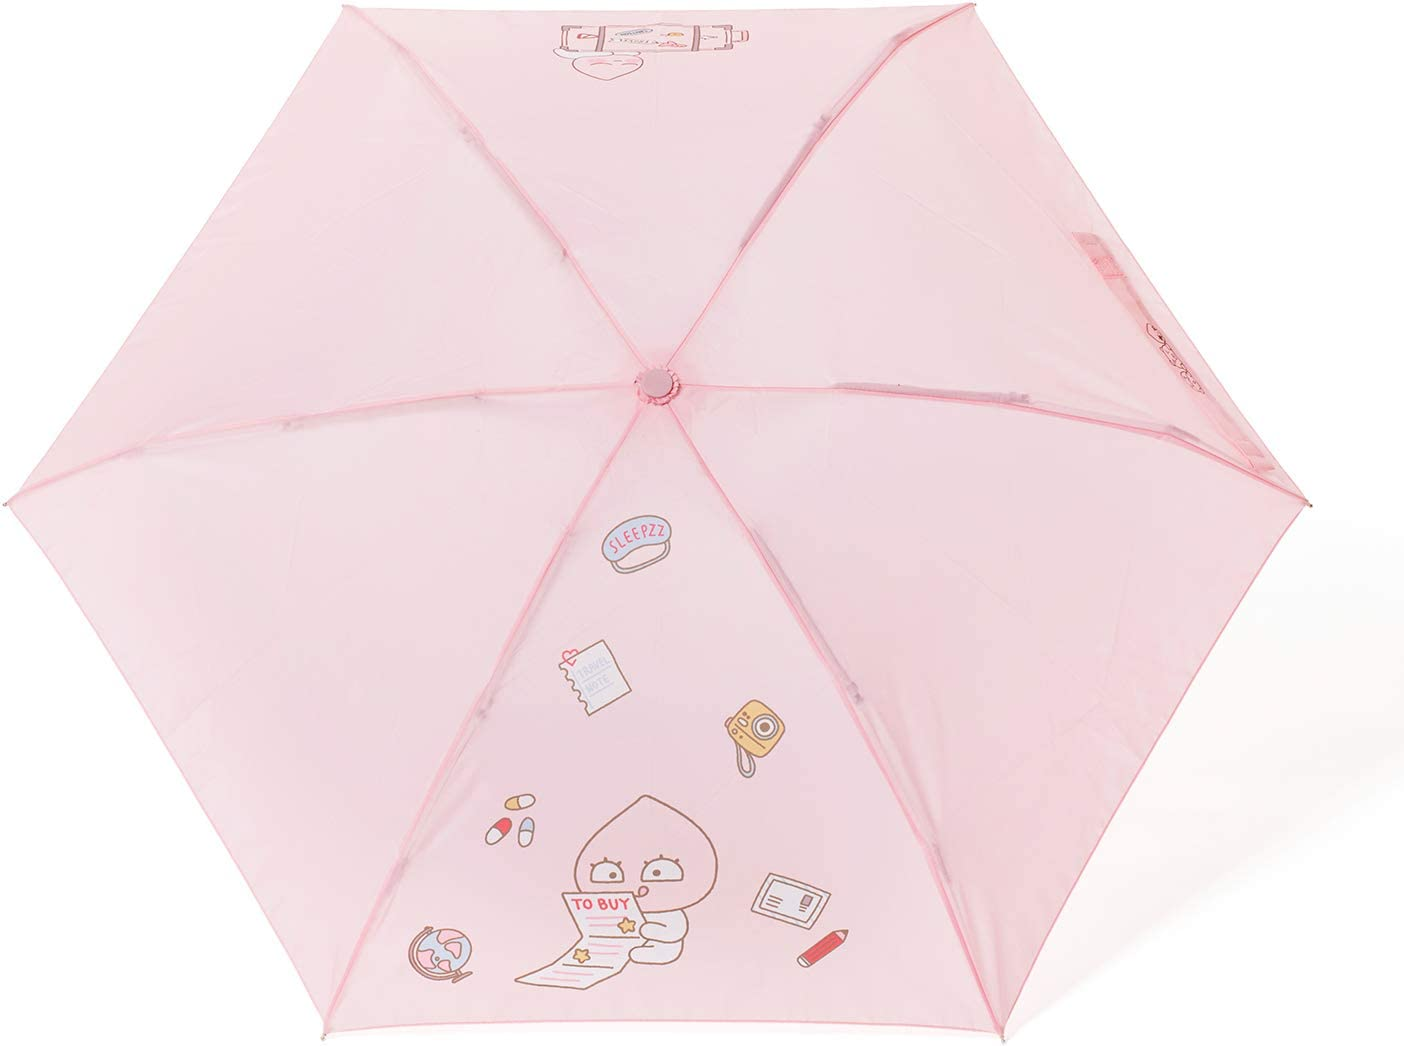 KAKAO FRIENDS Official- Ultra Compact Folding Travel Umbrella with Cover (Apeach)